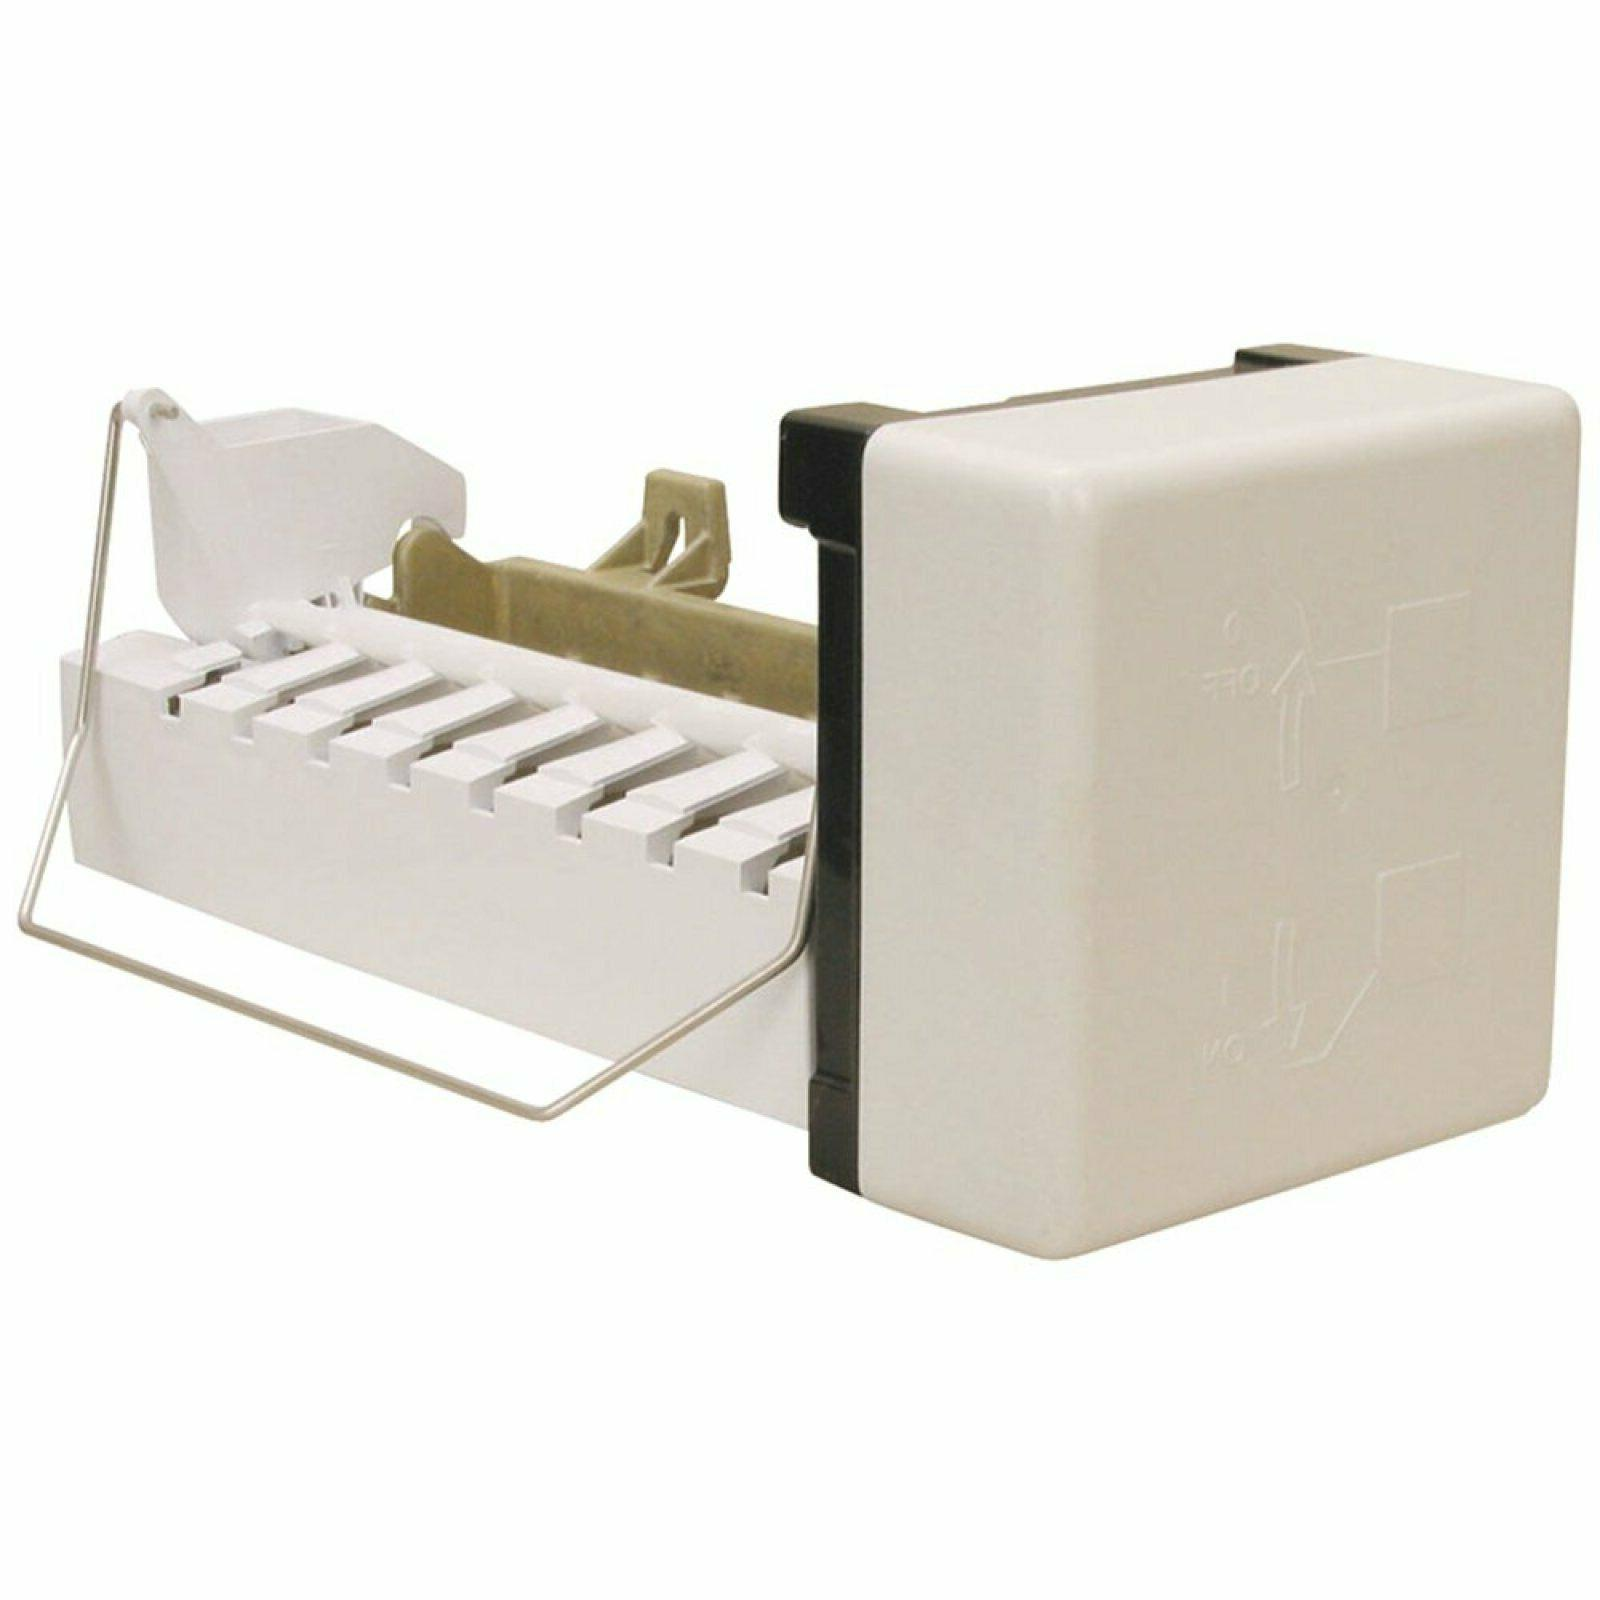 Exact Replacement Parts Erwim Ice Maker Freezer Parts For Wh